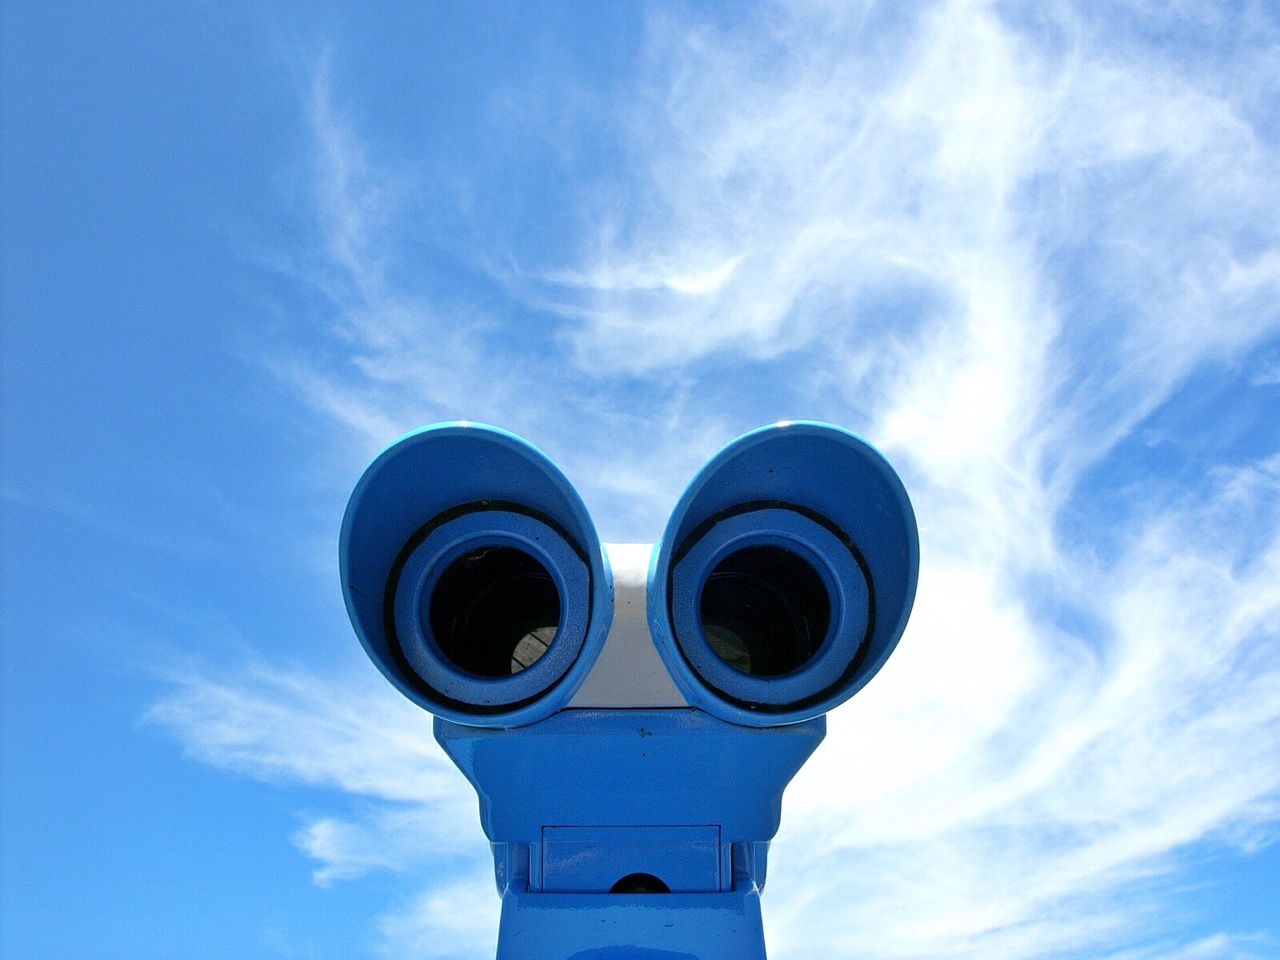 Close-up of binoculars against cloudy sky